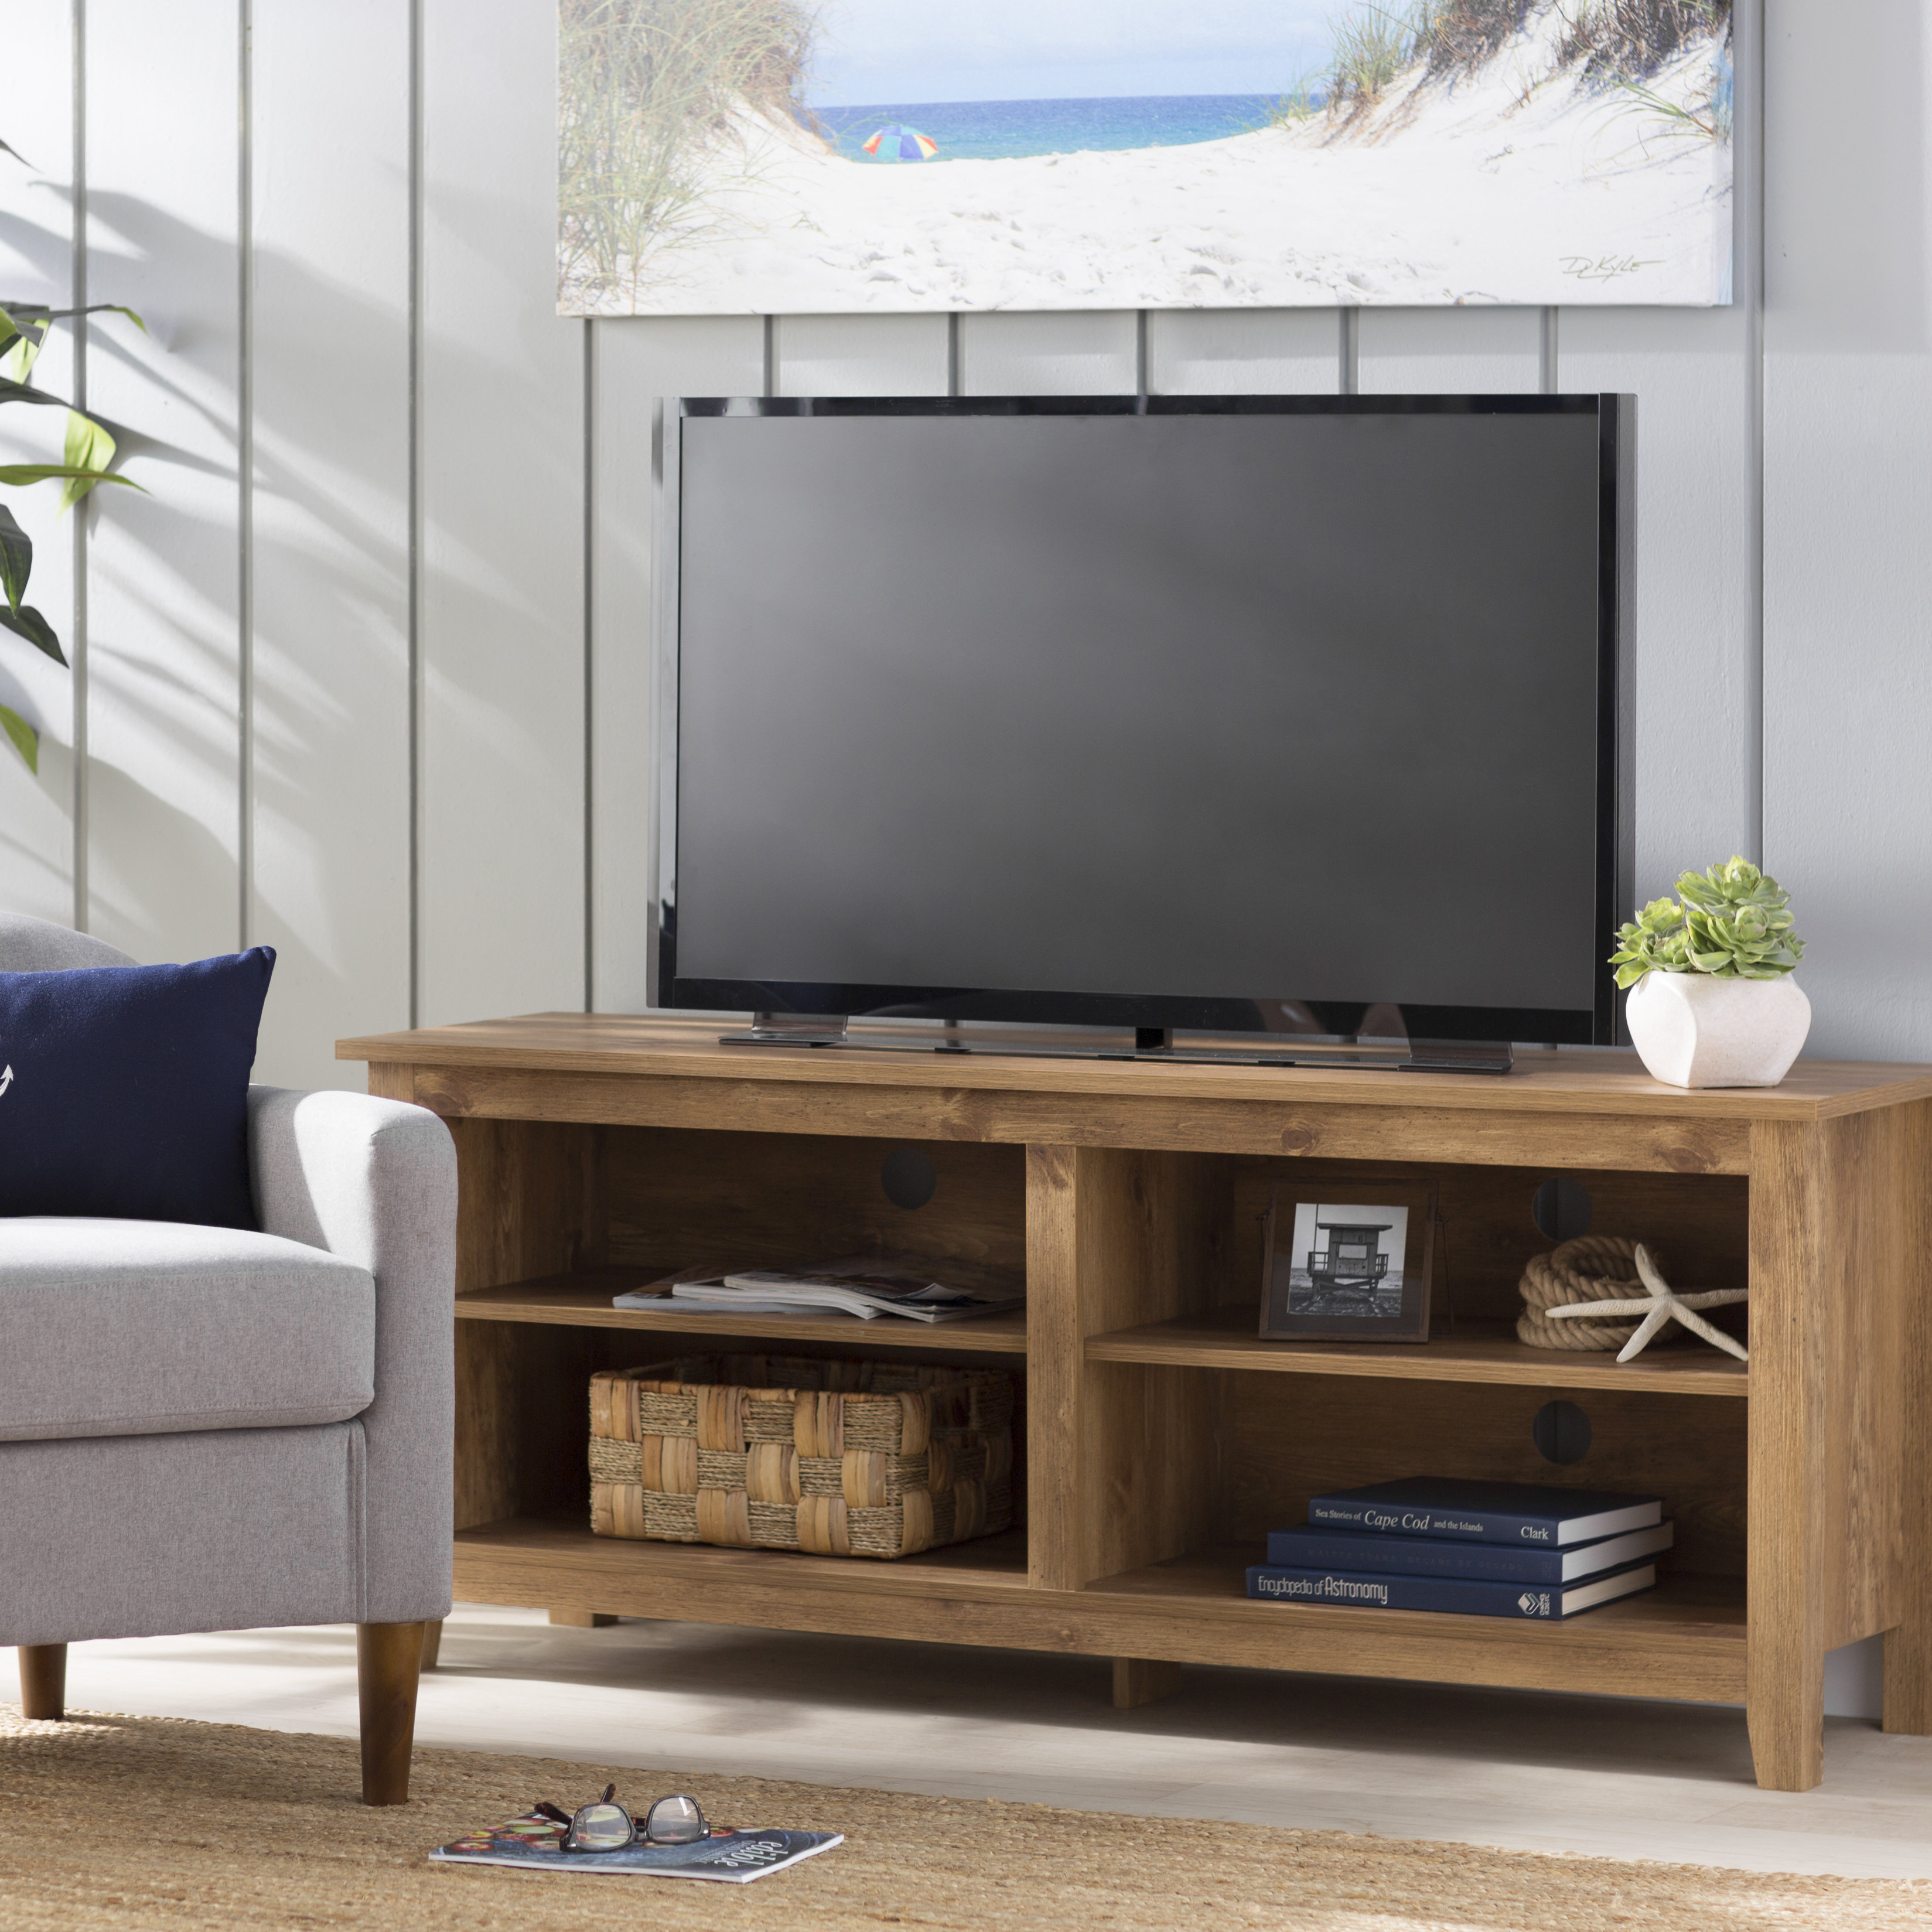 Tv Stands & Entertainment Centers You'll Love | Wayfair With Regard To Kenzie 72 Inch Open Display Tv Stands (View 8 of 30)